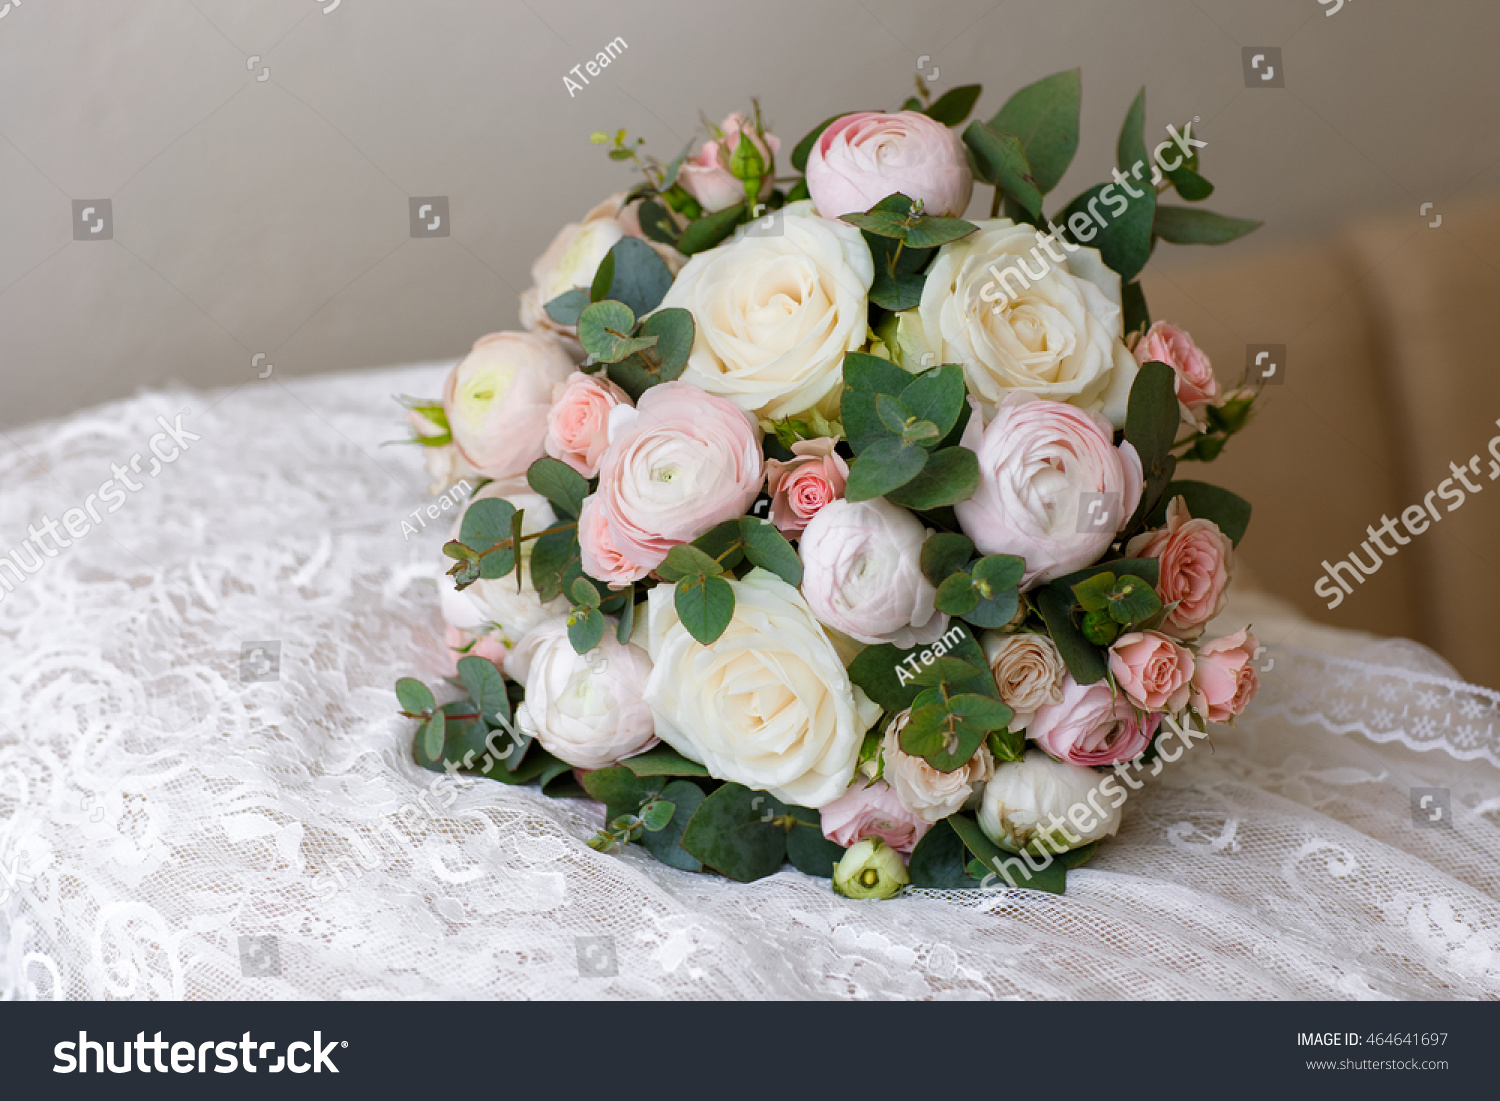 Flowers bouquet wedding decoration of bride, marriage roses and ...